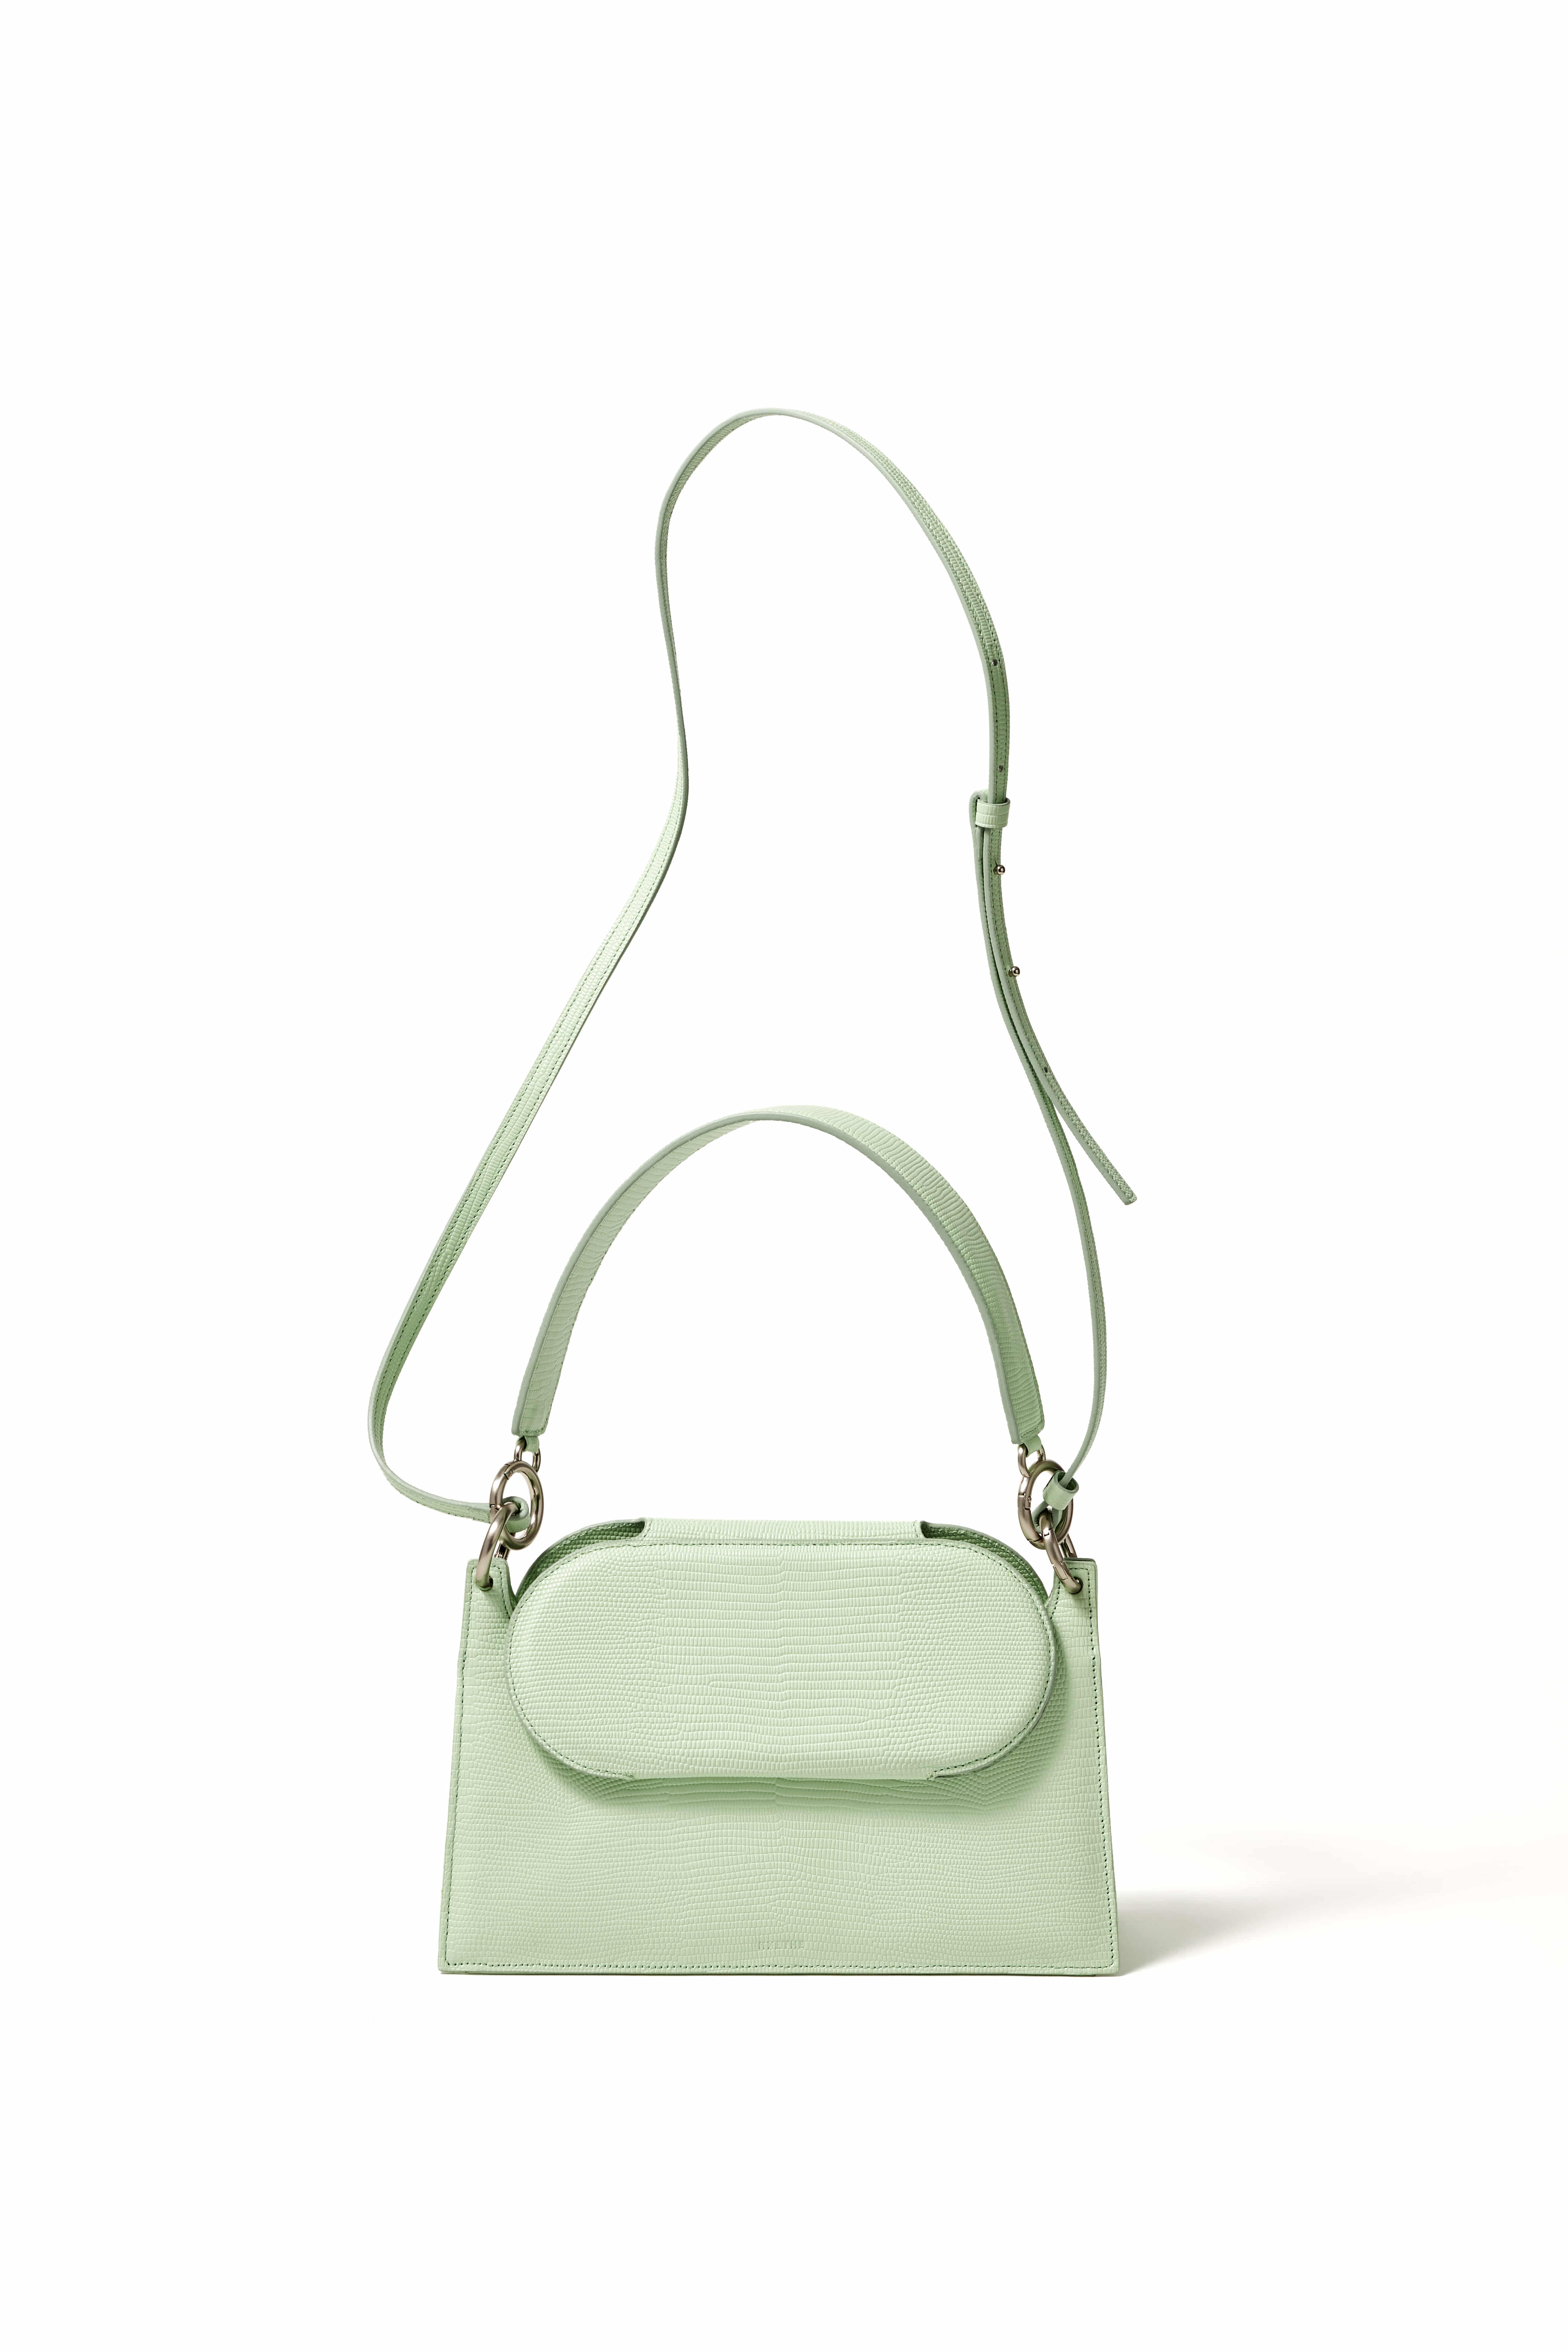 [SS20] EGGSHELL MIRROR SHOULDER BAG_NEO MINT